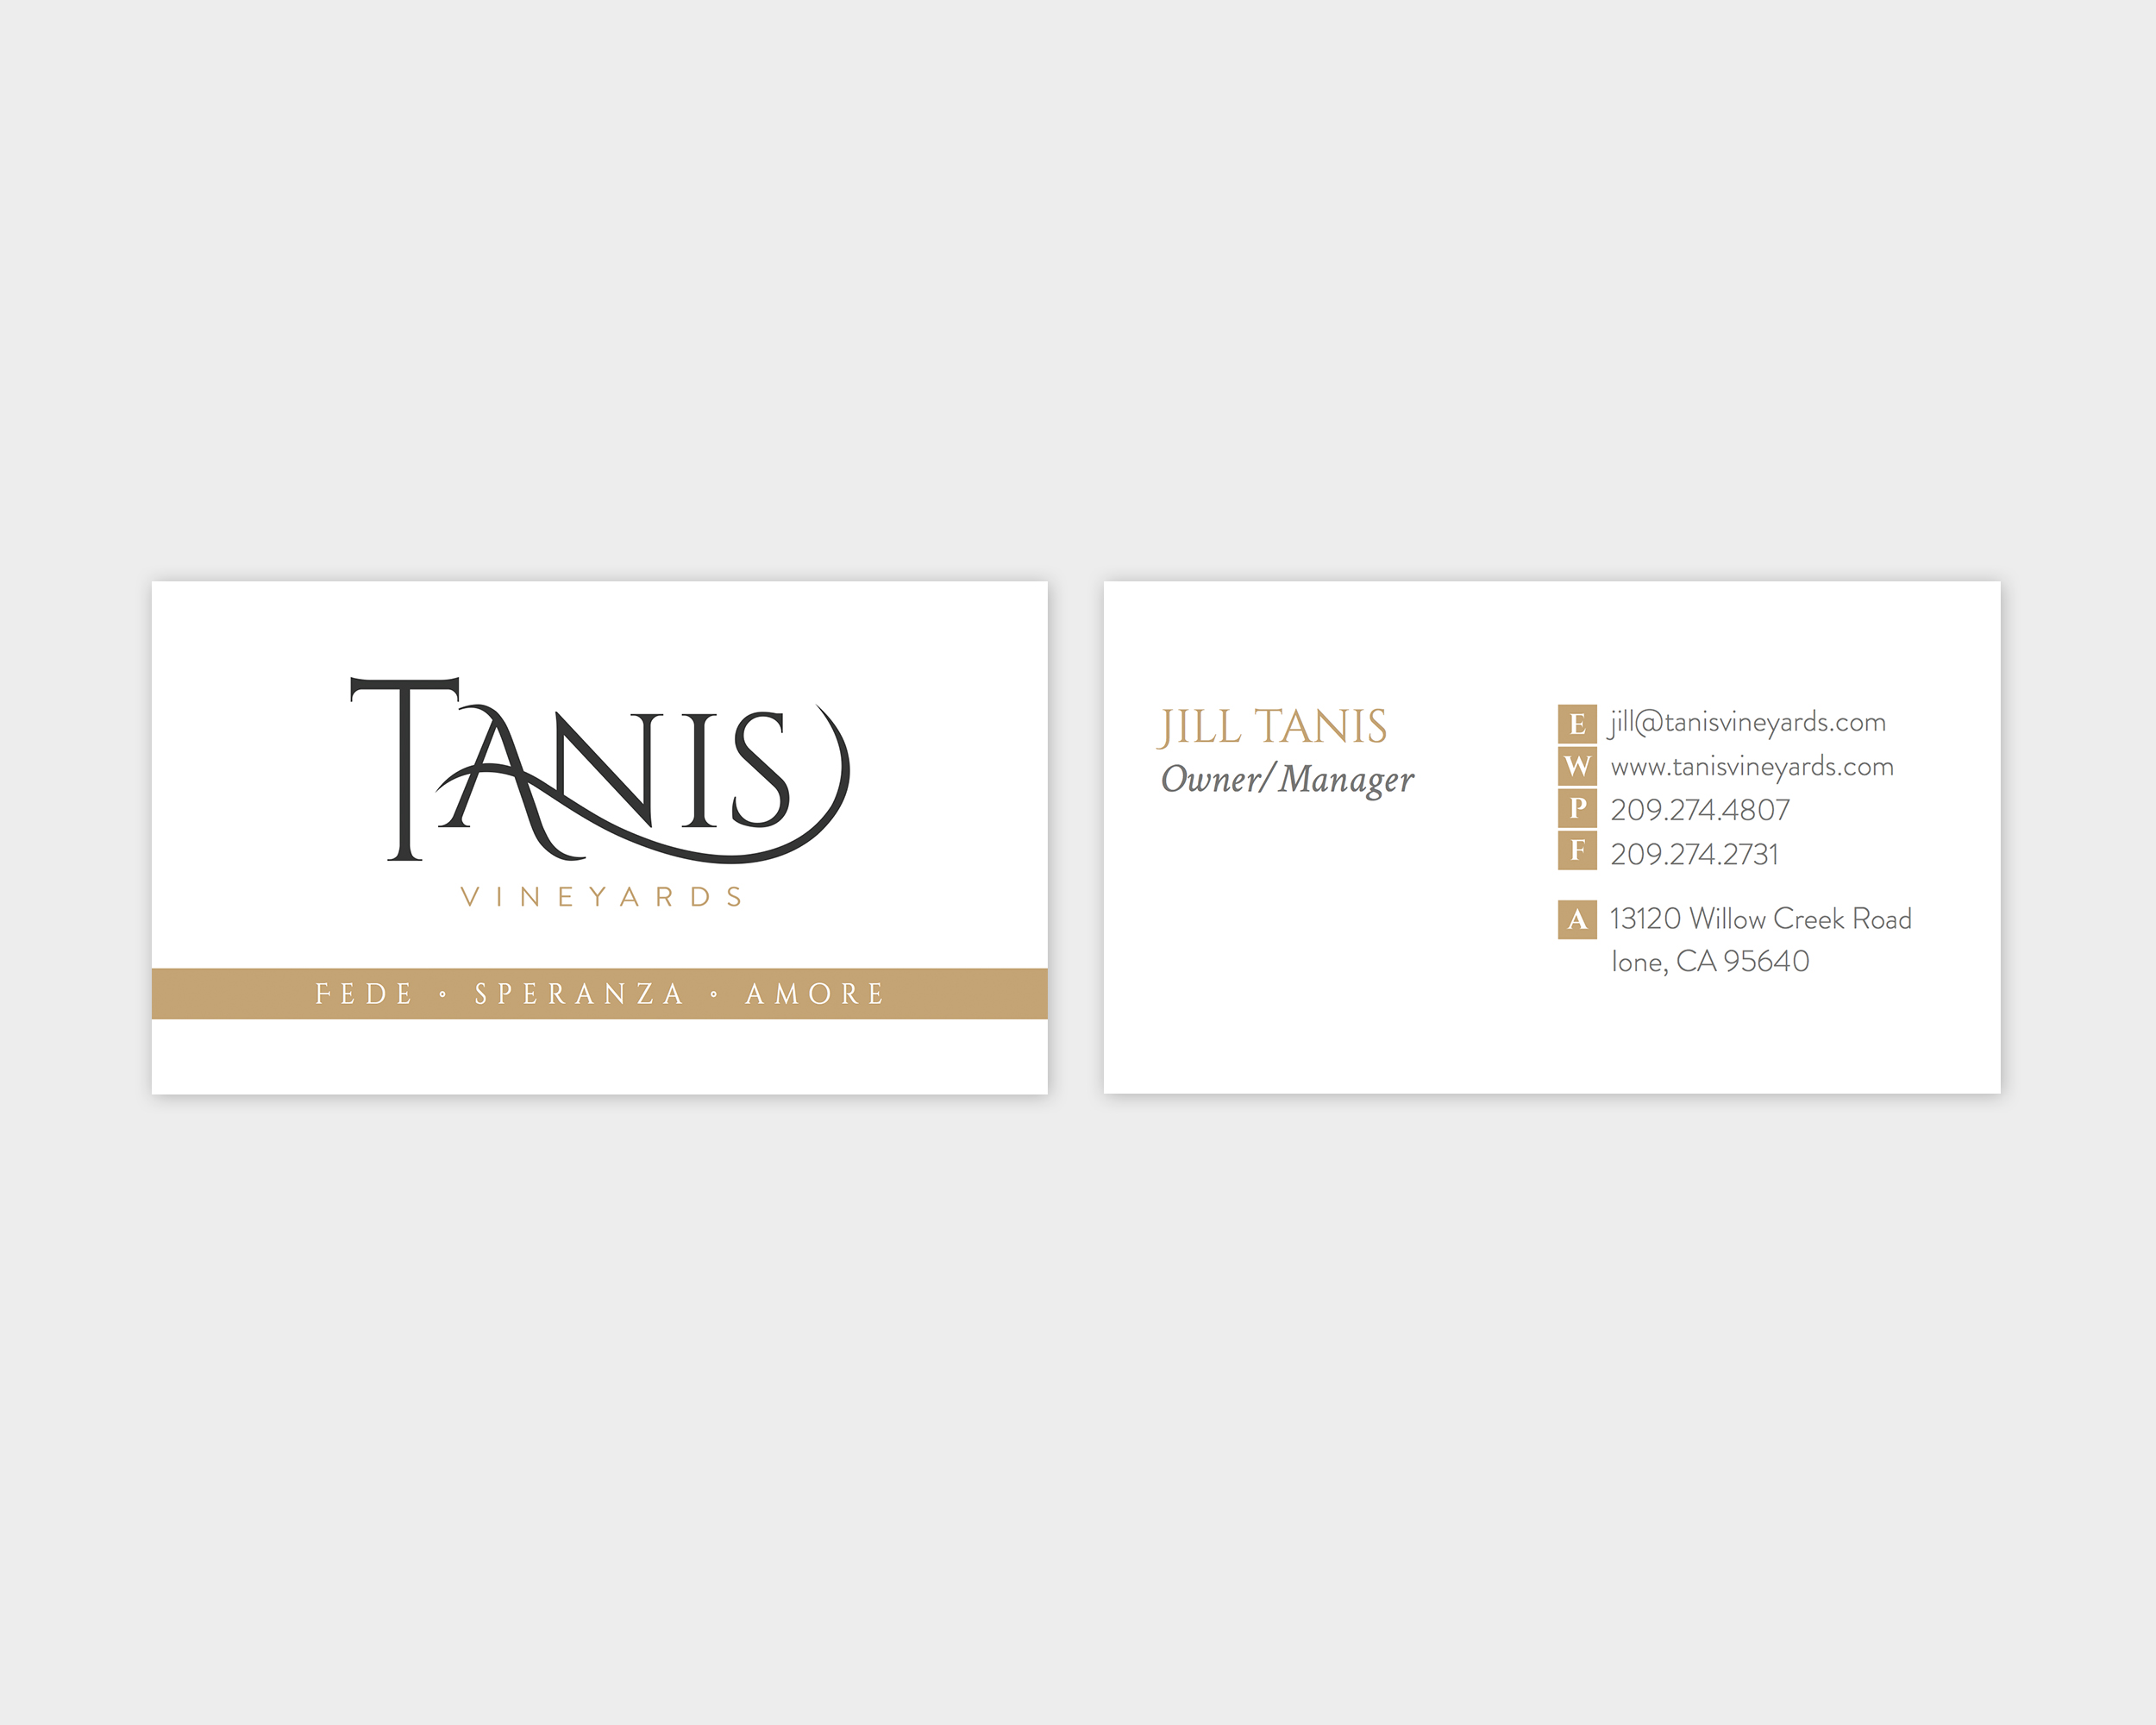 Tanis Vineyards Business Card Design